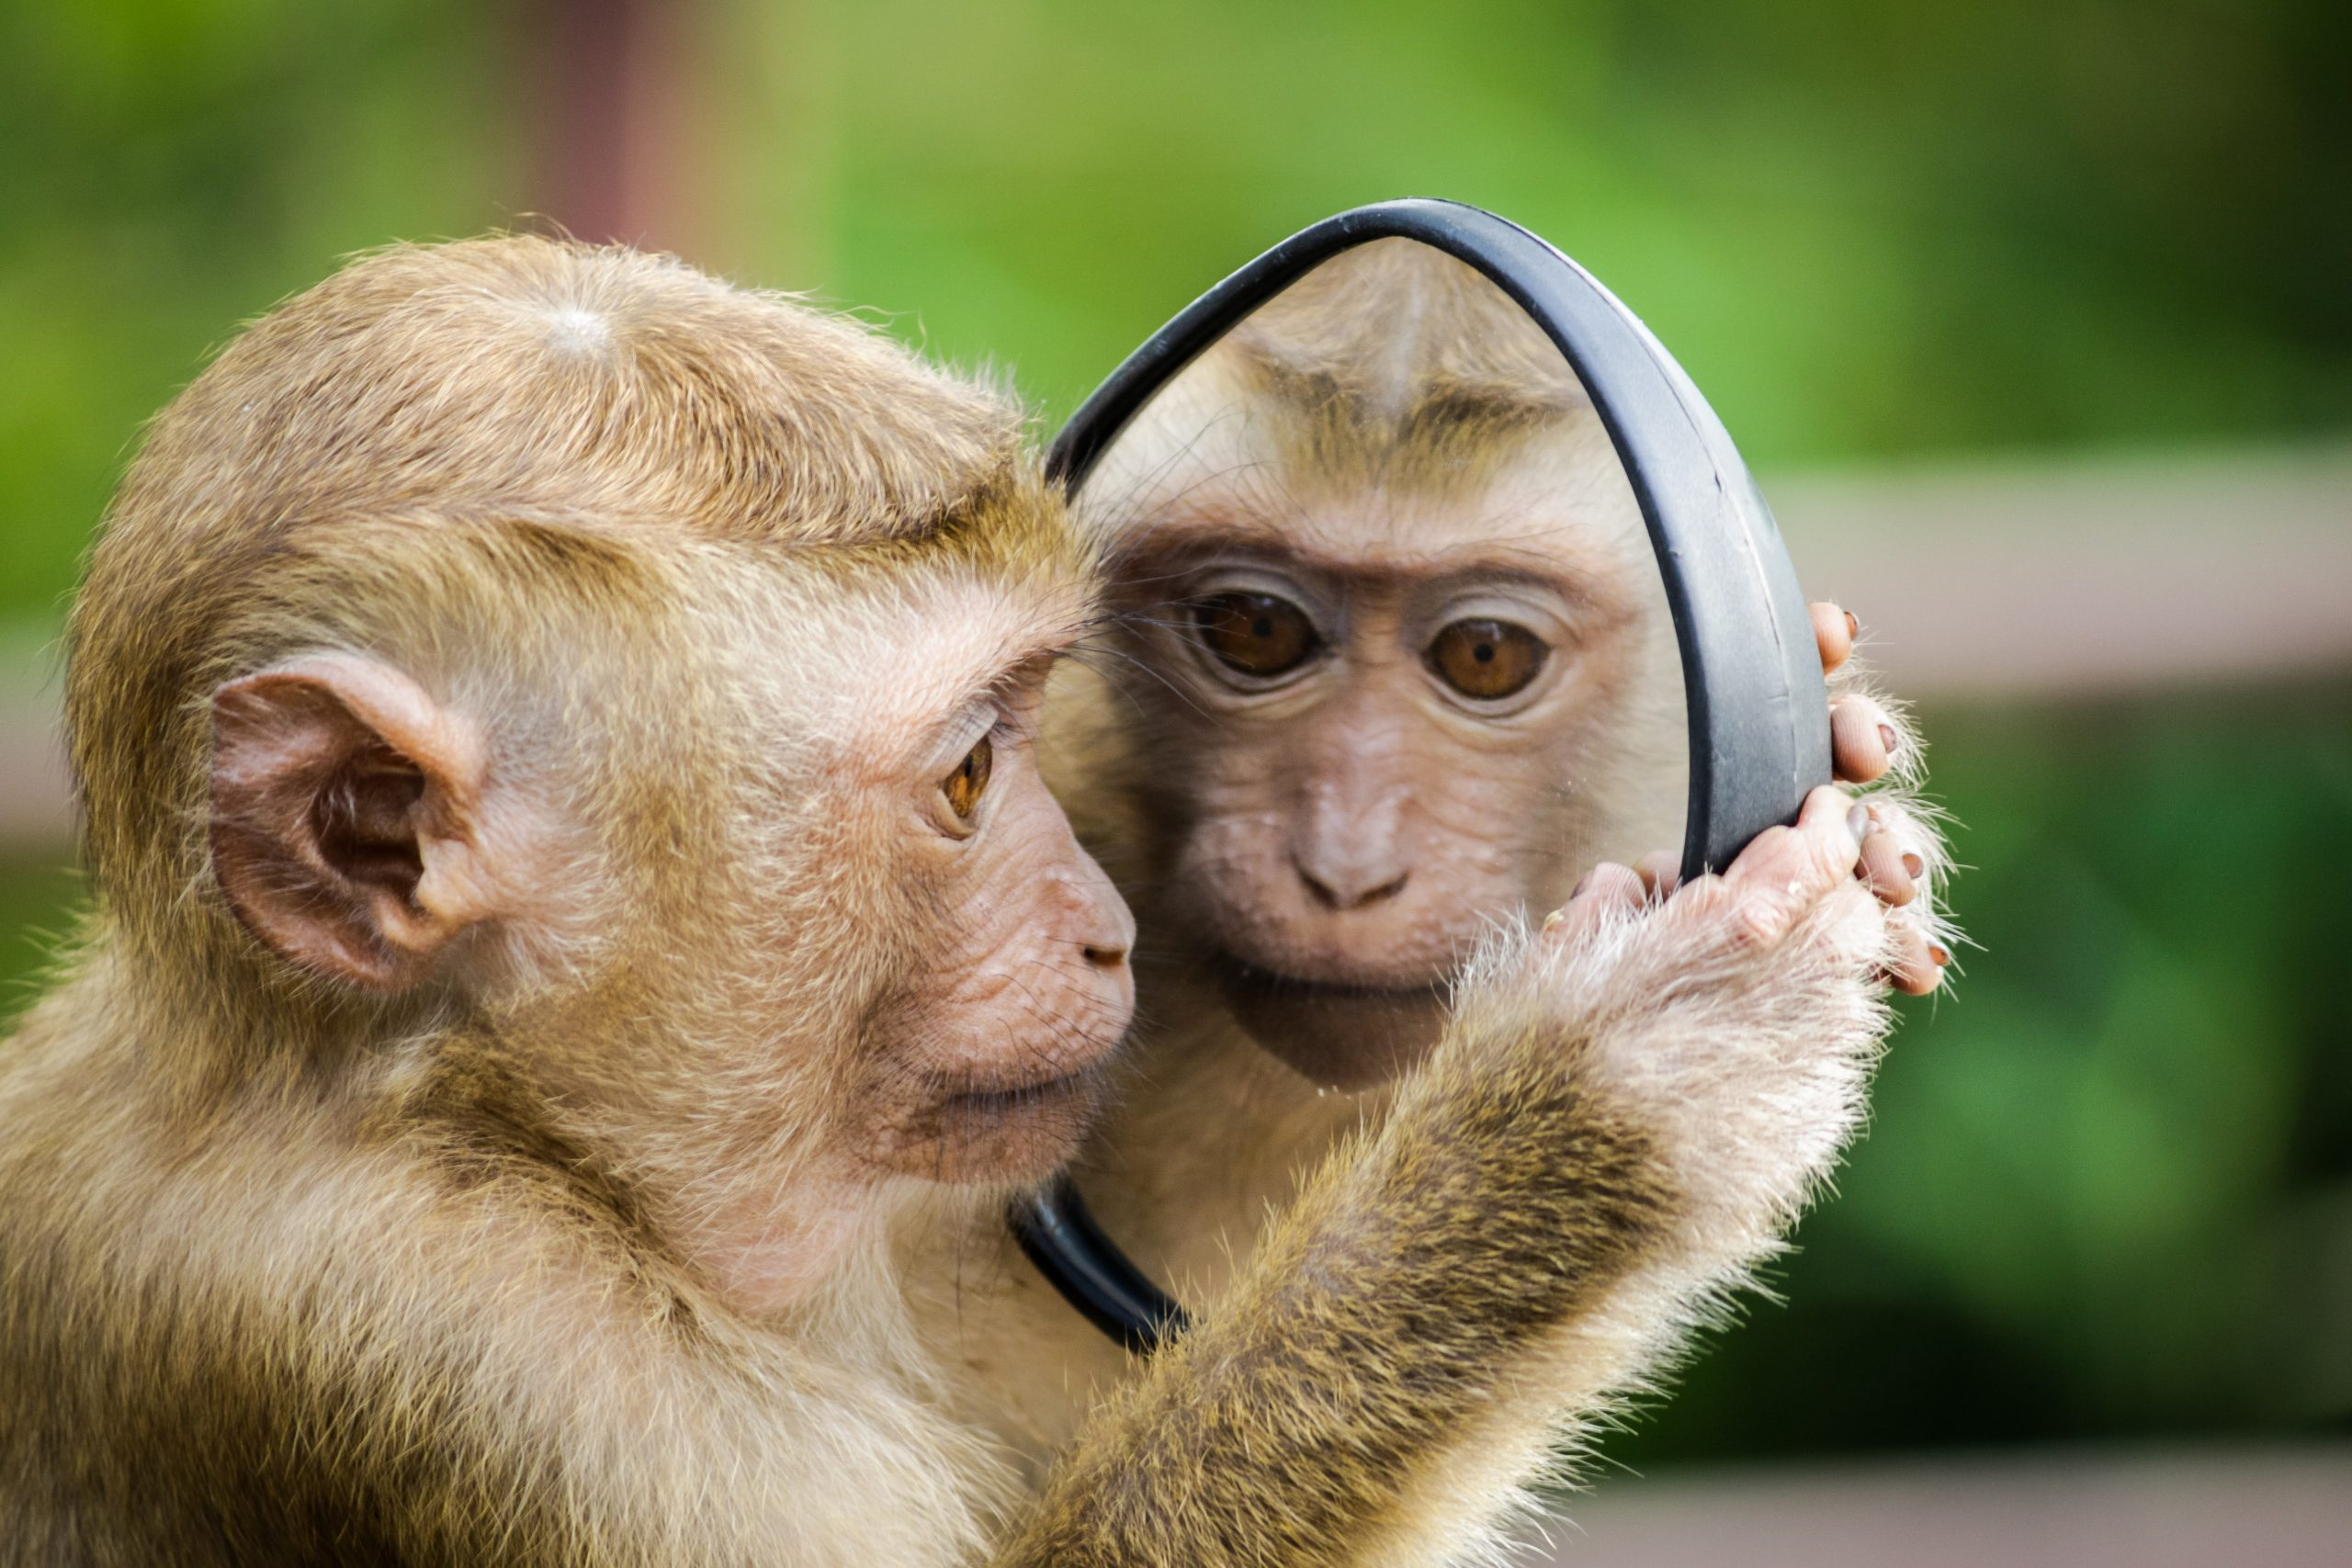 Monkey looking in a mirror at its reflection